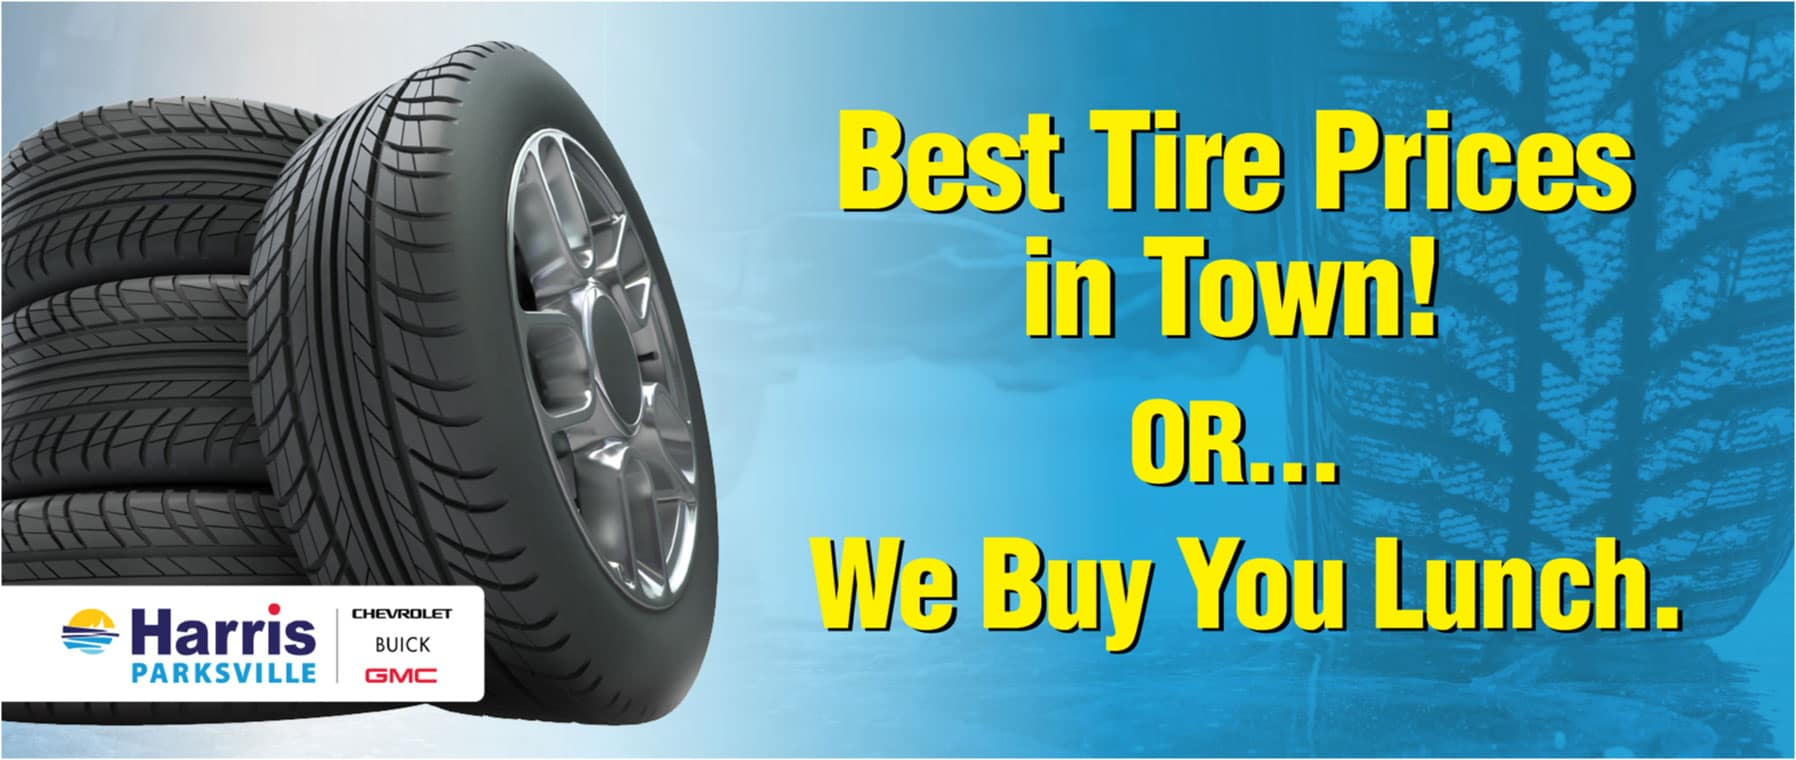 Banner image for Best Tire Prices in Town or We Buy You Lunch Banner